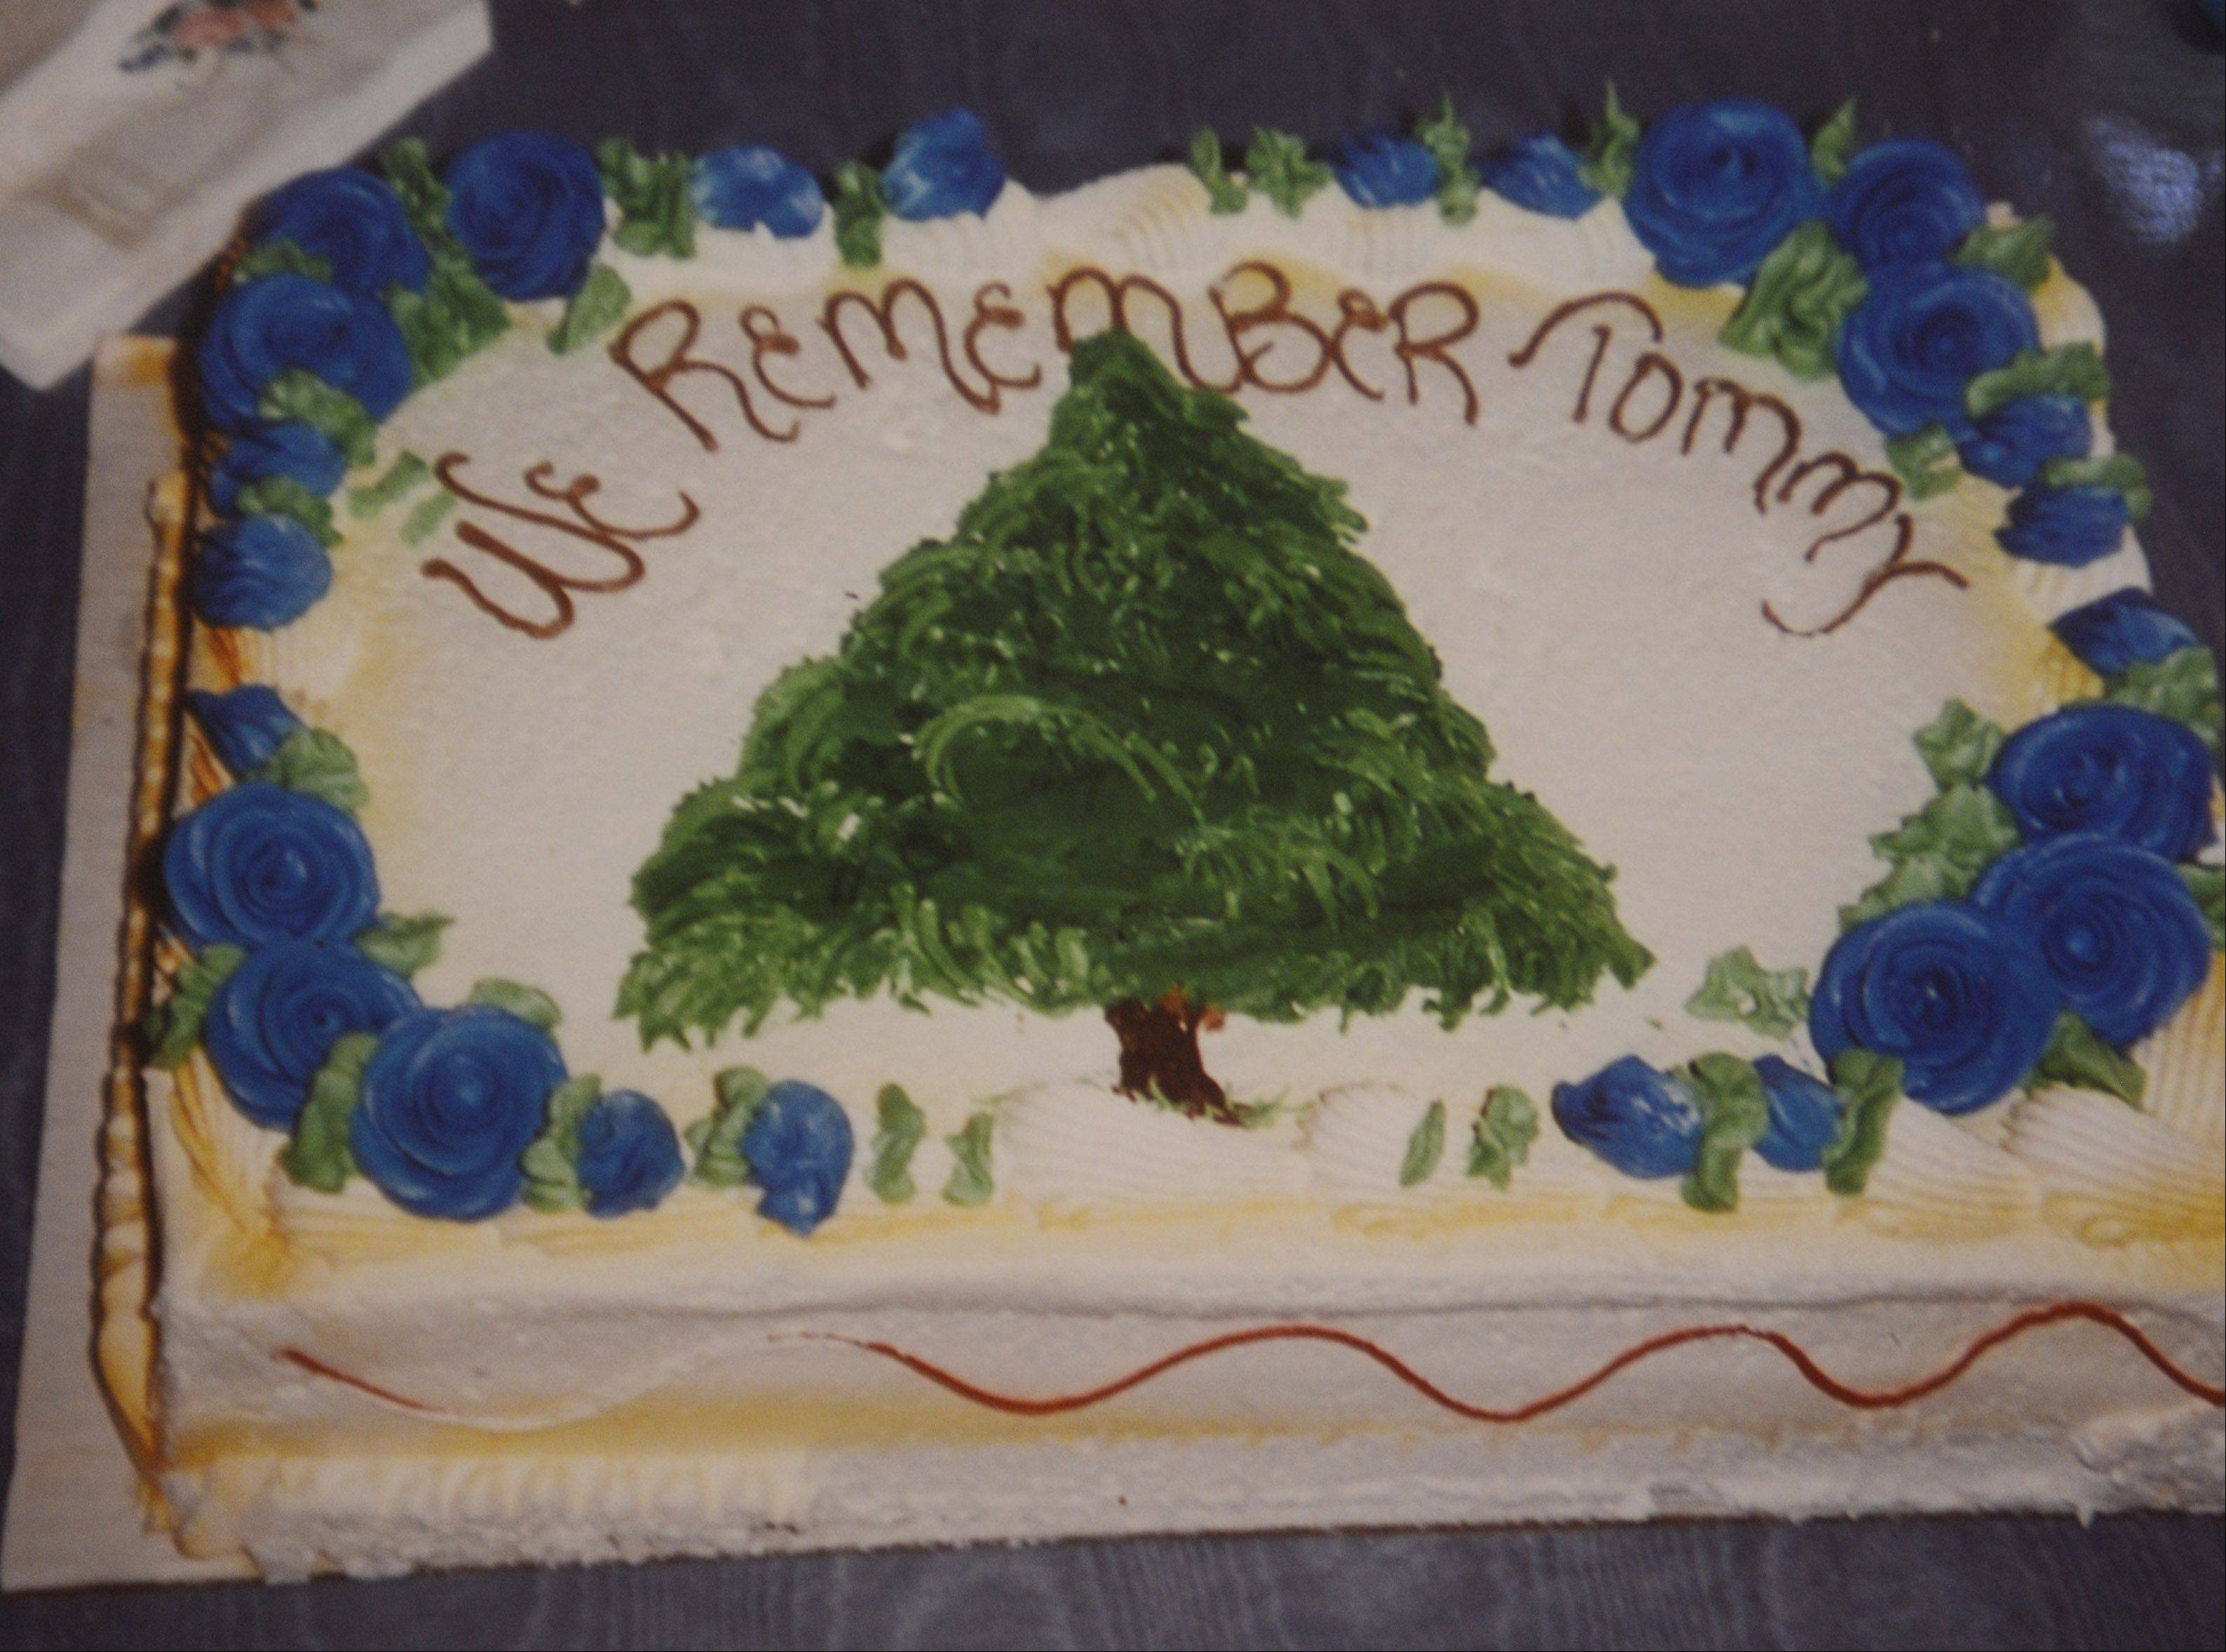 With the help of their friends and neighbors, the McGovern family planted an evergreen tree in memory of Tommy McGovern in front of their home on Pine Street in Mount Prospect on May 7, 1992. This cake was part of the celebration.